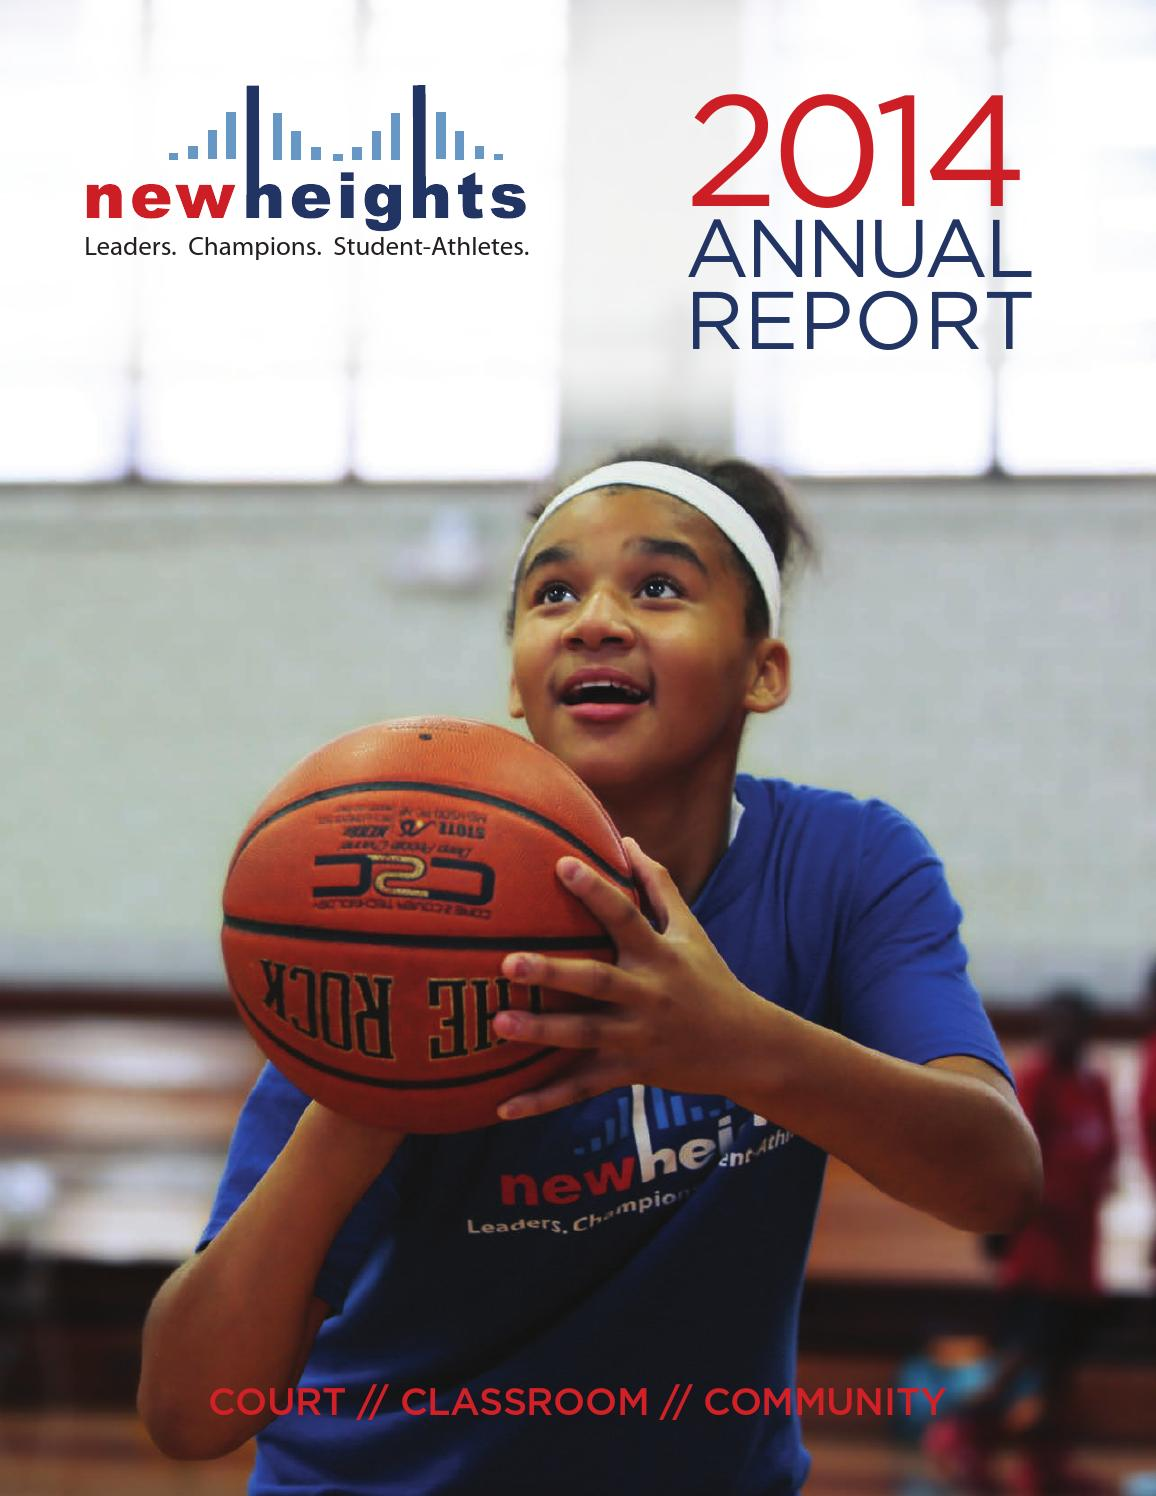 New Heights 2014 Annual Report by New Heights issuu